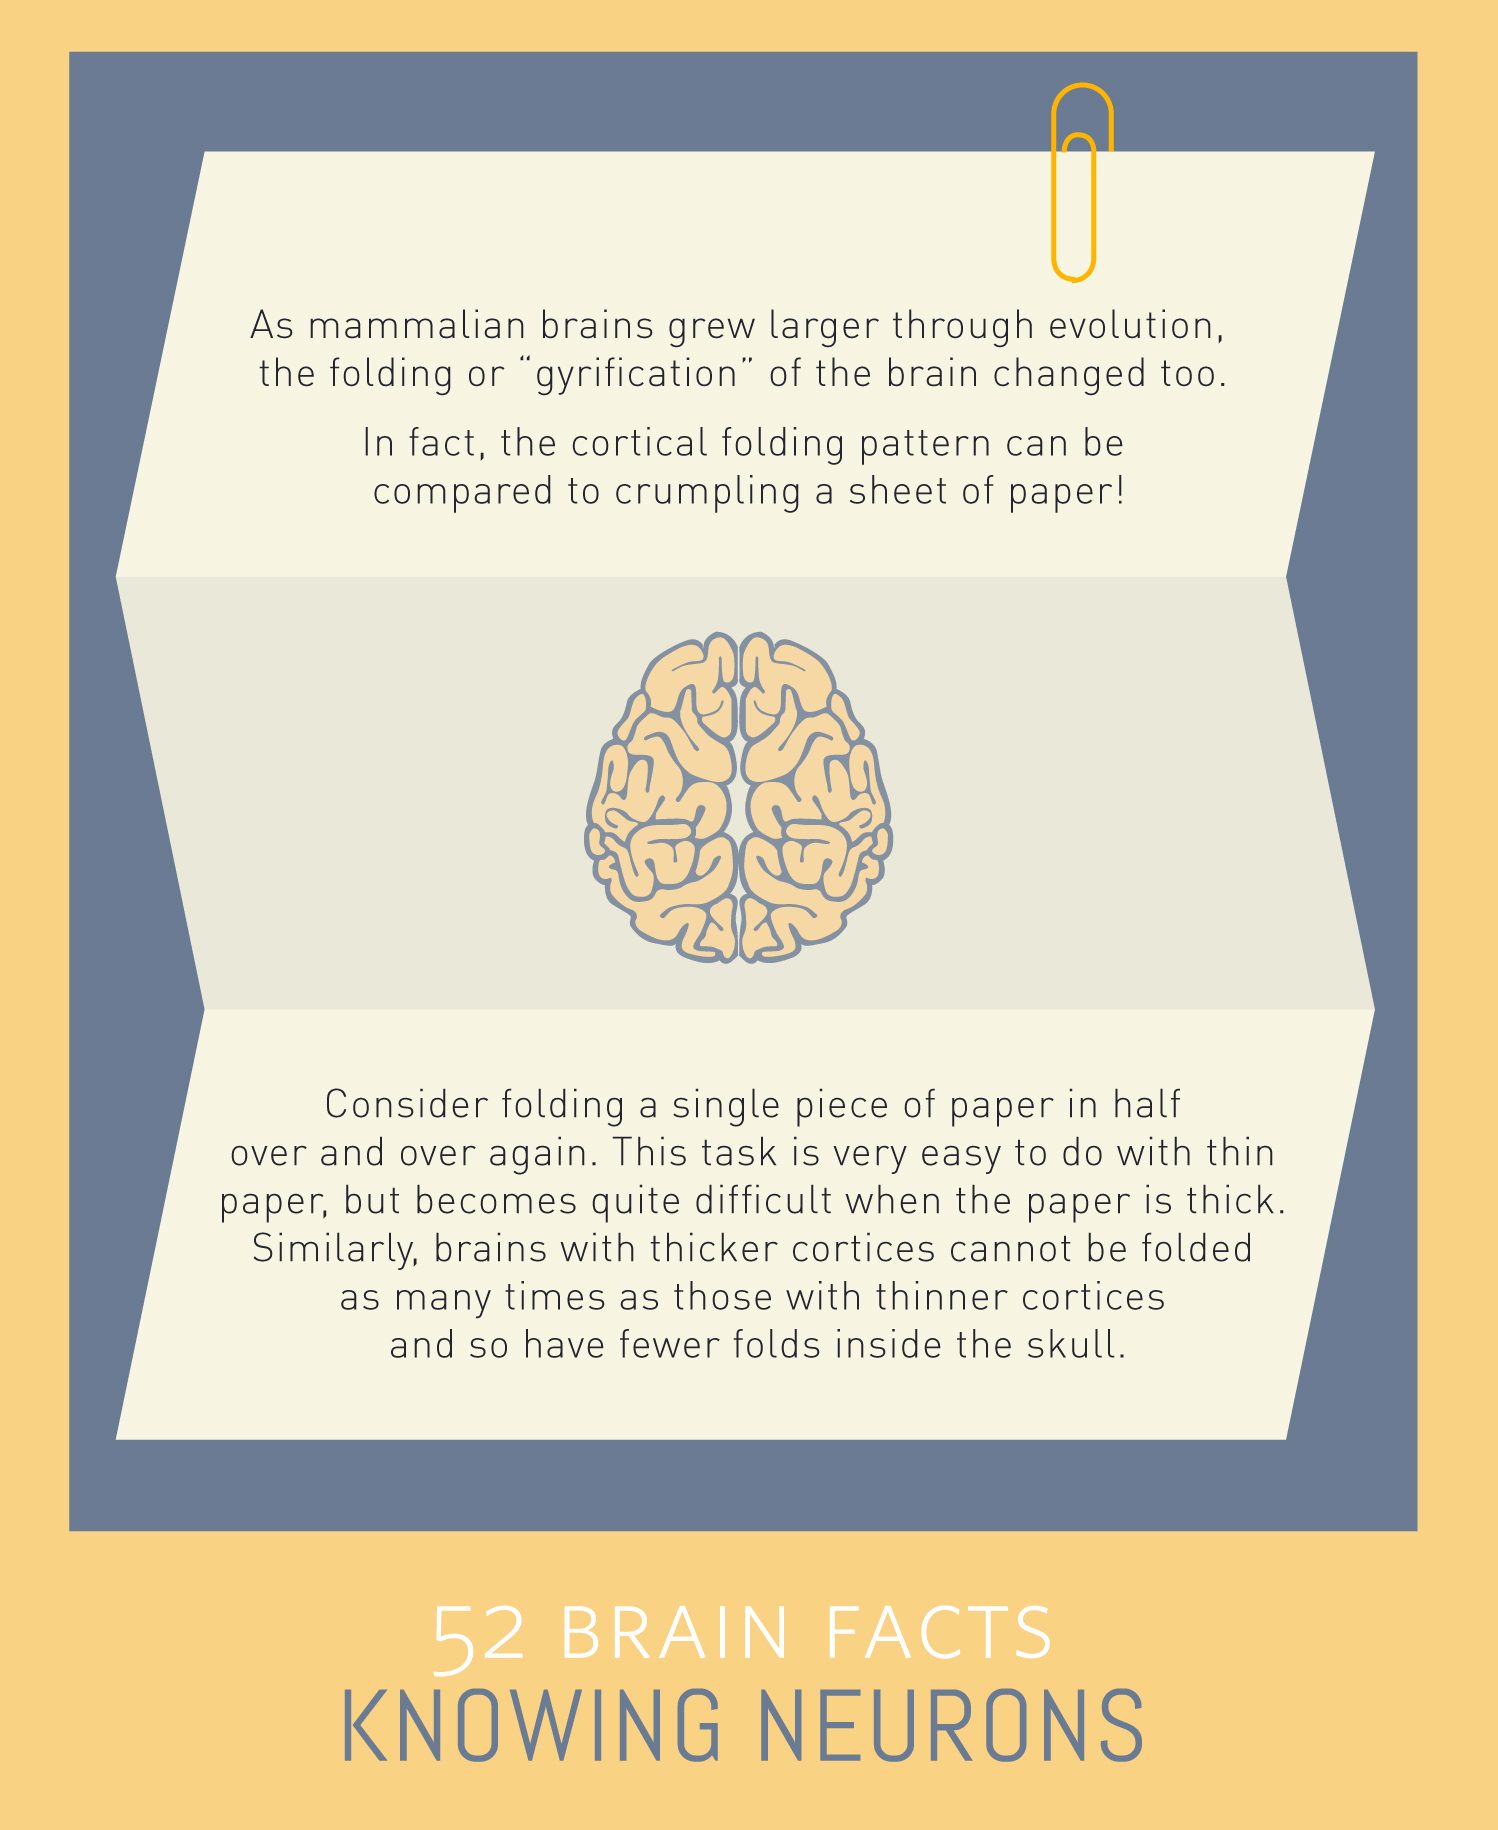 Myth or Fact? Cortical folding is a lot like crumpling paper.